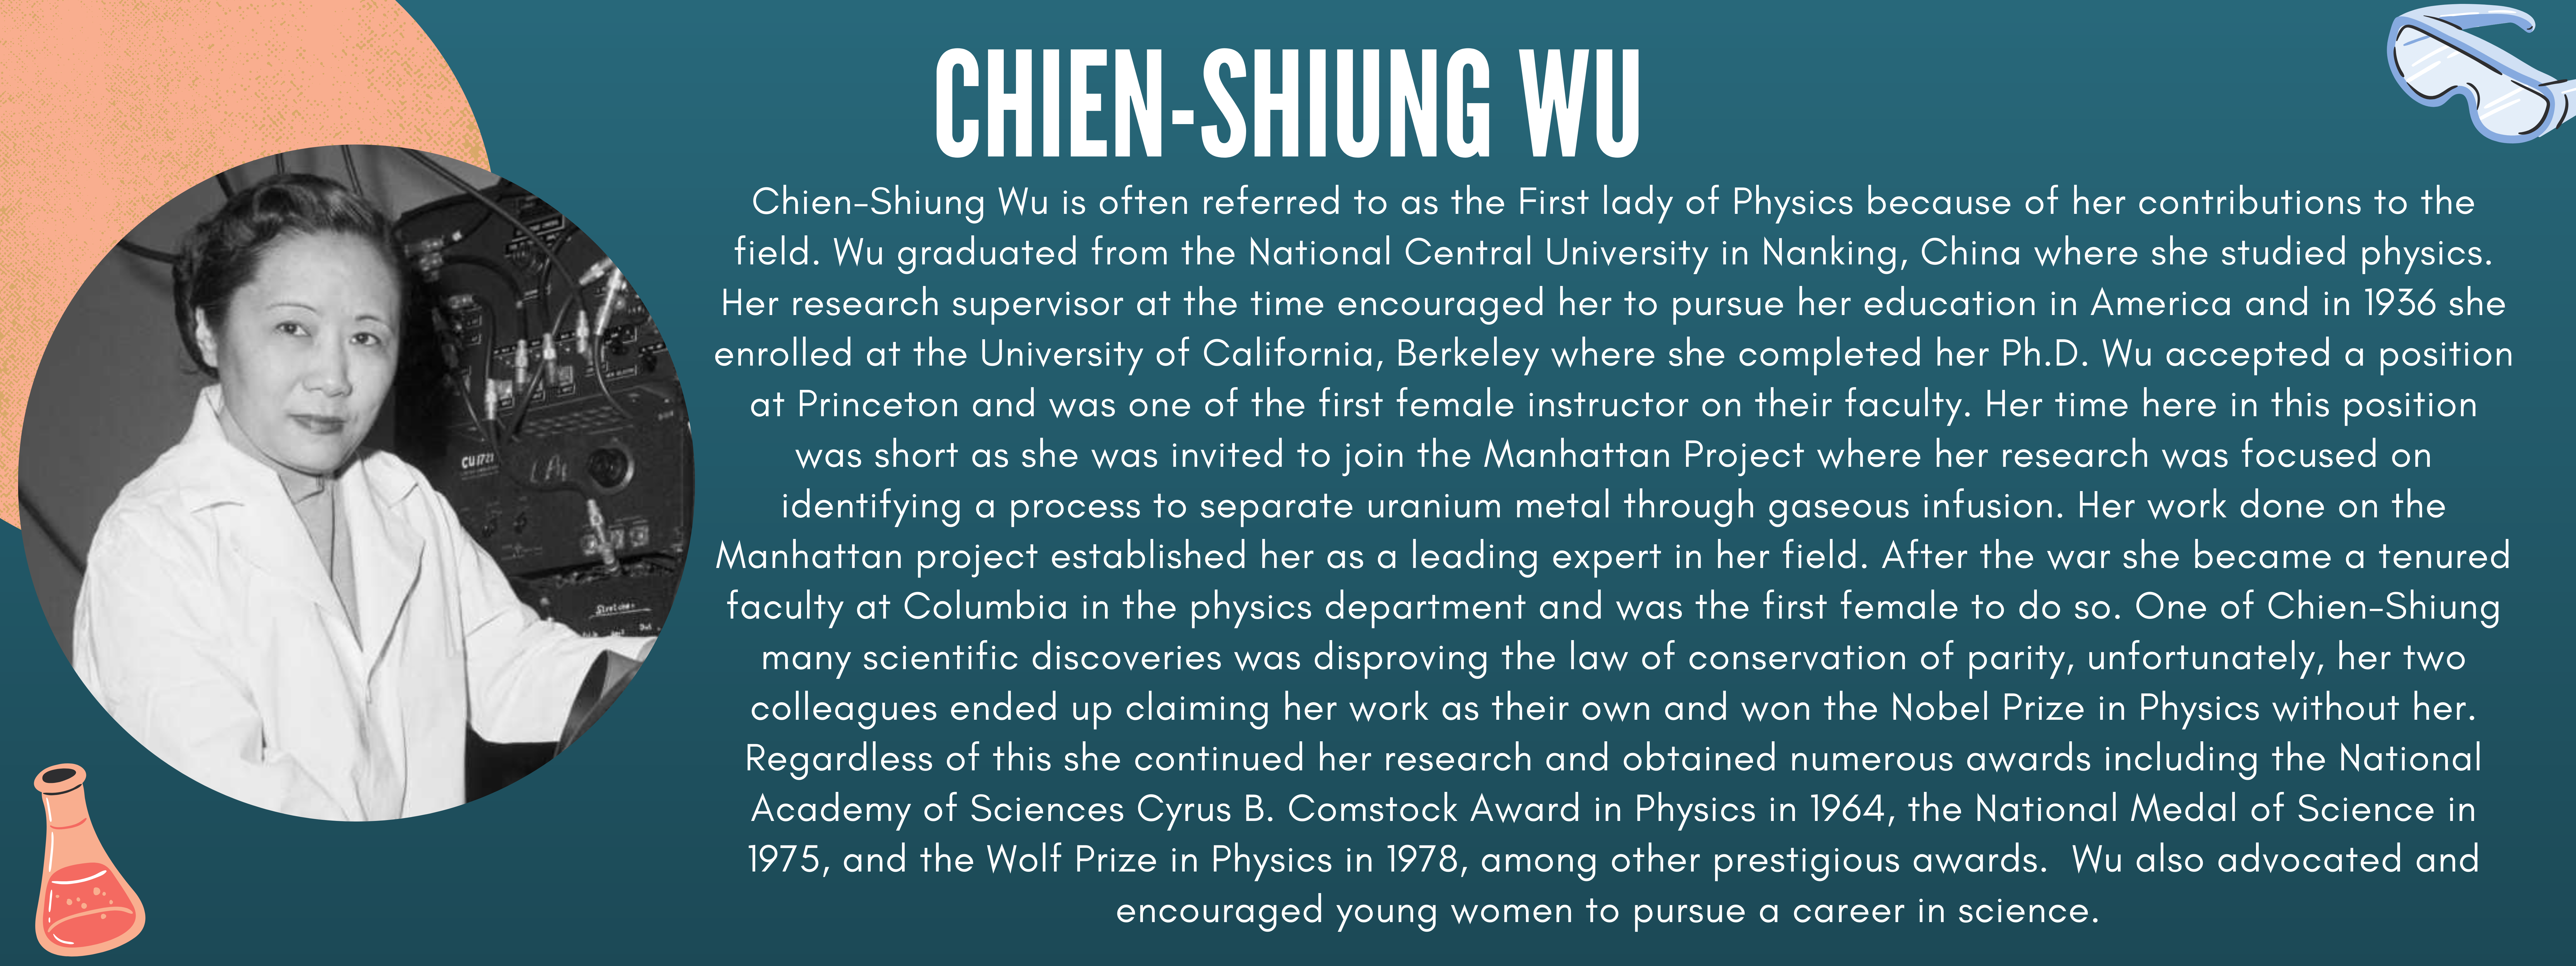 Chien-Shiung Wu is often referred to as the First lady of Physics because of her contributions to the field. Wu graduated from the National Central University in Nanking, China where she studied physics. Her research supervisor at the time encouraged her to pursue her education in America and in 1936 she enrolled at the University of California, Berkeley where she completed her Ph.D. Wu accepted a position at Princeton and was one of the first female instructor on their faculty. Her time here in this position was short as she was invited to join the Manhattan Project where her research was focused on identifying a process to separate uranium metal through gaseous infusion. Her work done on the Manhattan project established her as a leading expert in her field. After the war she became a tenured faculty at Columbia in the physics department and was the first female to do so. One of Chien-Shiung many scientific discoveries was disproving the law of conservation of parity, unfortunately, her two colleagues ended up claiming her work as their own and won the Nobel Prize in Physics without her. Regardless of this she continued her research and obtained numerous awards including the National Academy of Sciences Cyrus B. Comstock Award in Physics in 1964, the National Medal of Science in 1975, and the Wolf Prize in Physics in 1978, among other prestigious awards.  Wu also advocated and encouraged young women to pursue a career in science.